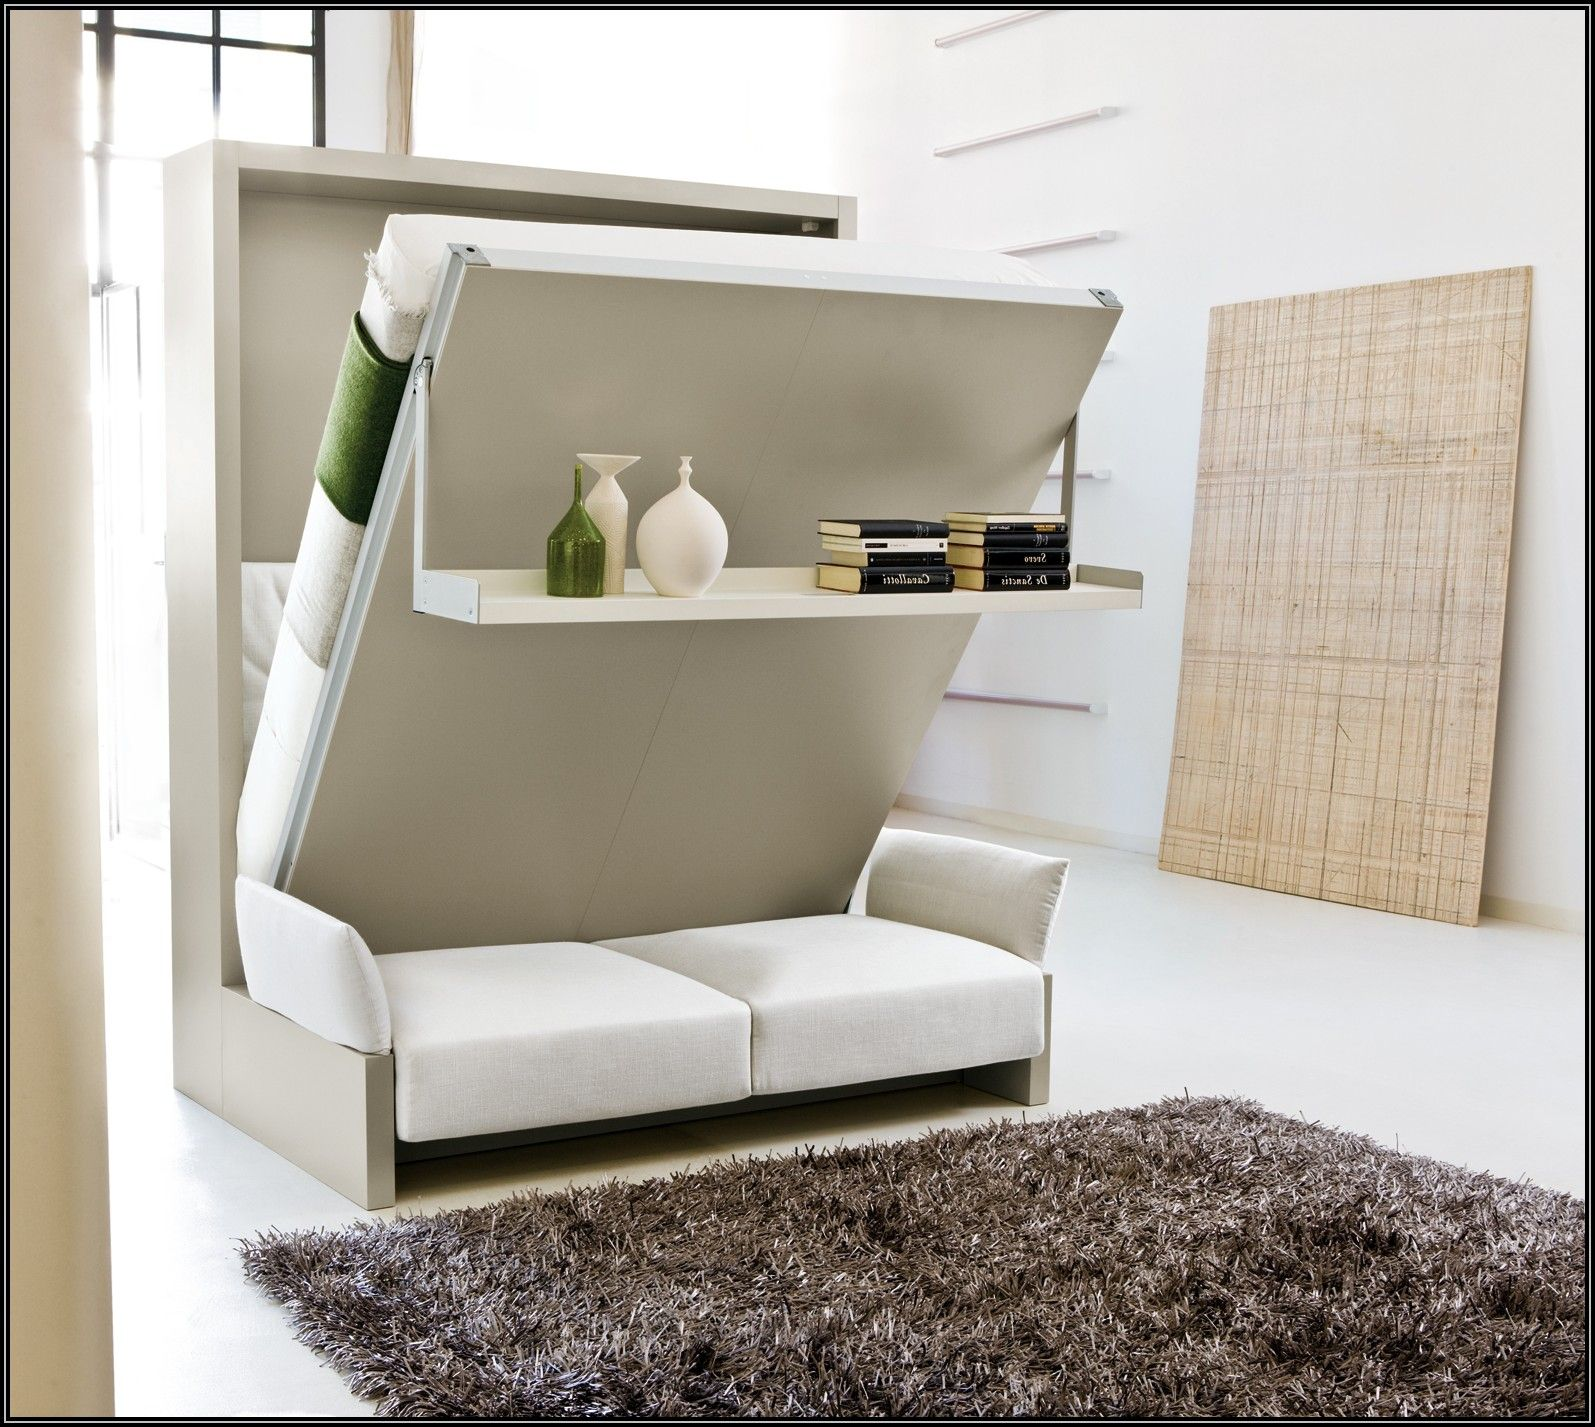 murphy bed ikea. Wonderful Bed Save Small Space In A Bedroom Using Murphy Bed IKEA Outstanding  Ikea With Convertible Sofa Also Shag Rug For Interior Design And Pinterest